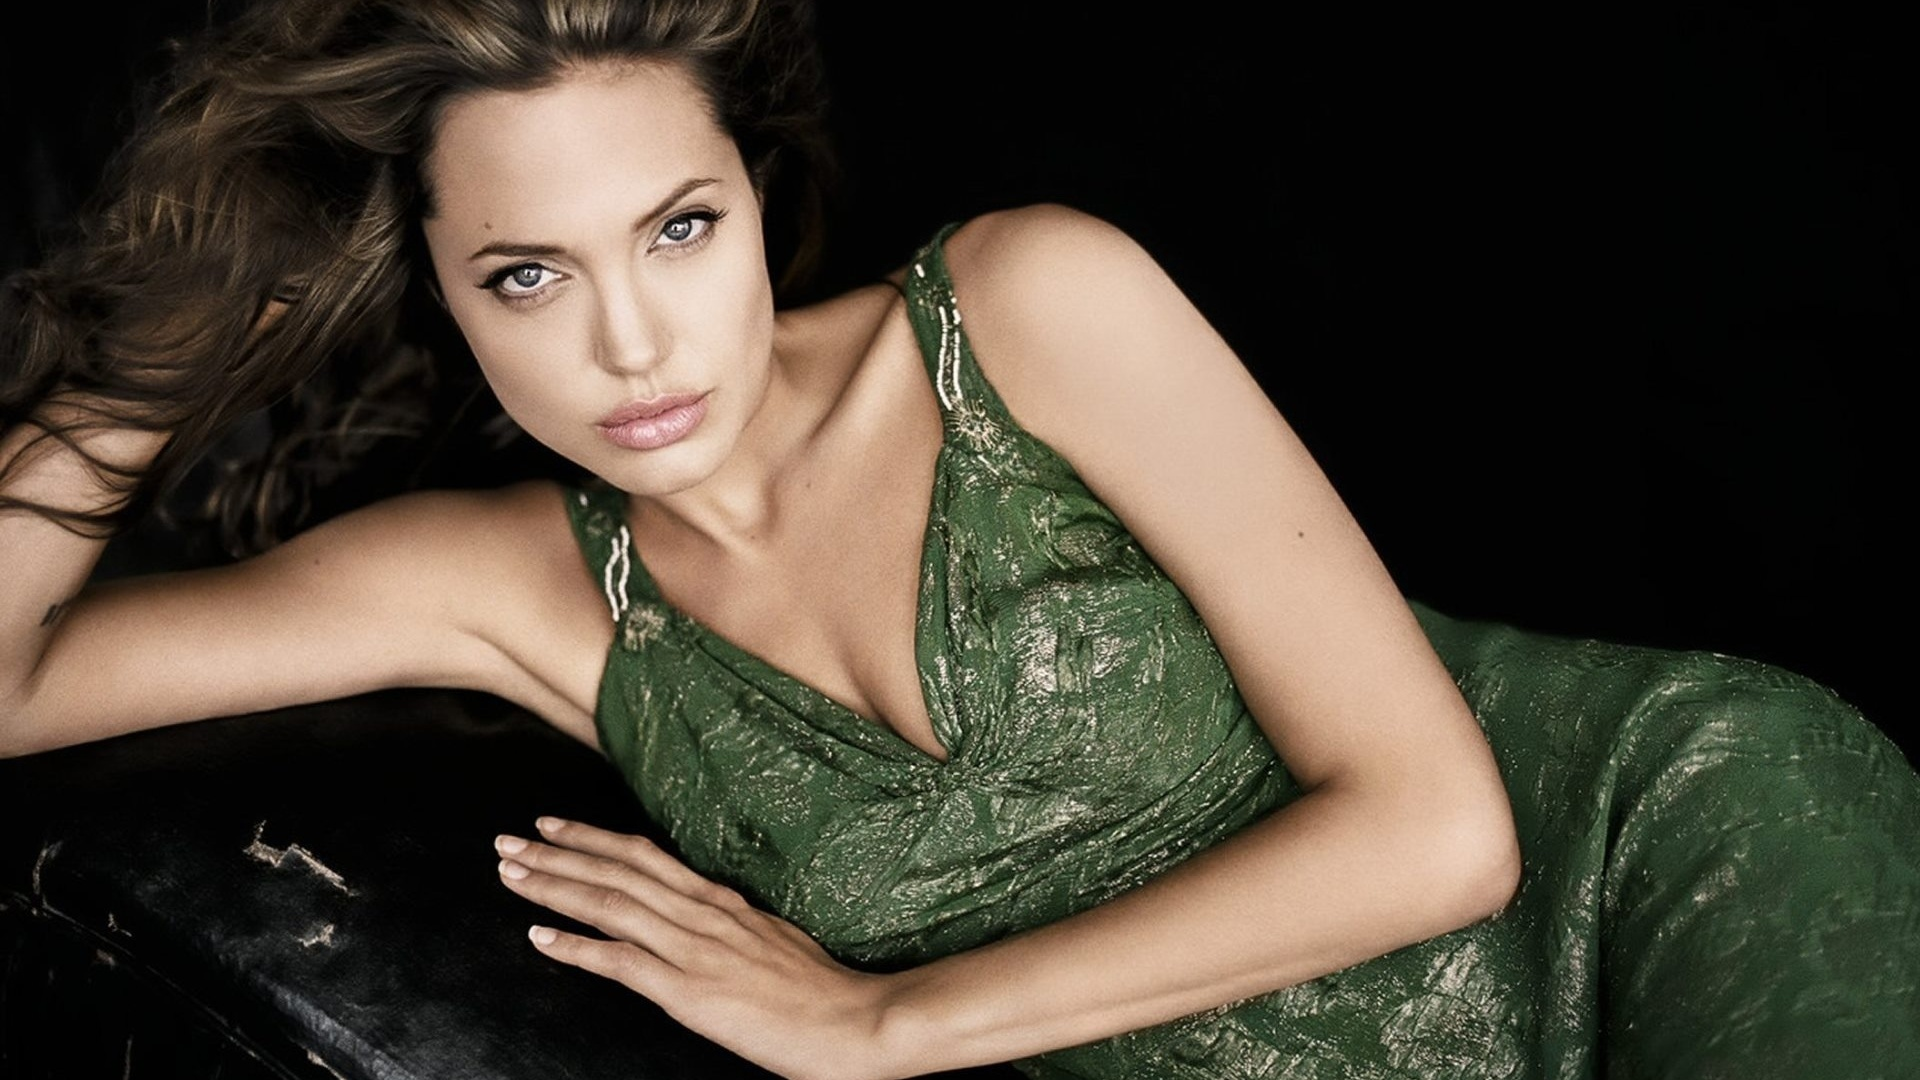 Hot angelina jolie, top young adult fiction